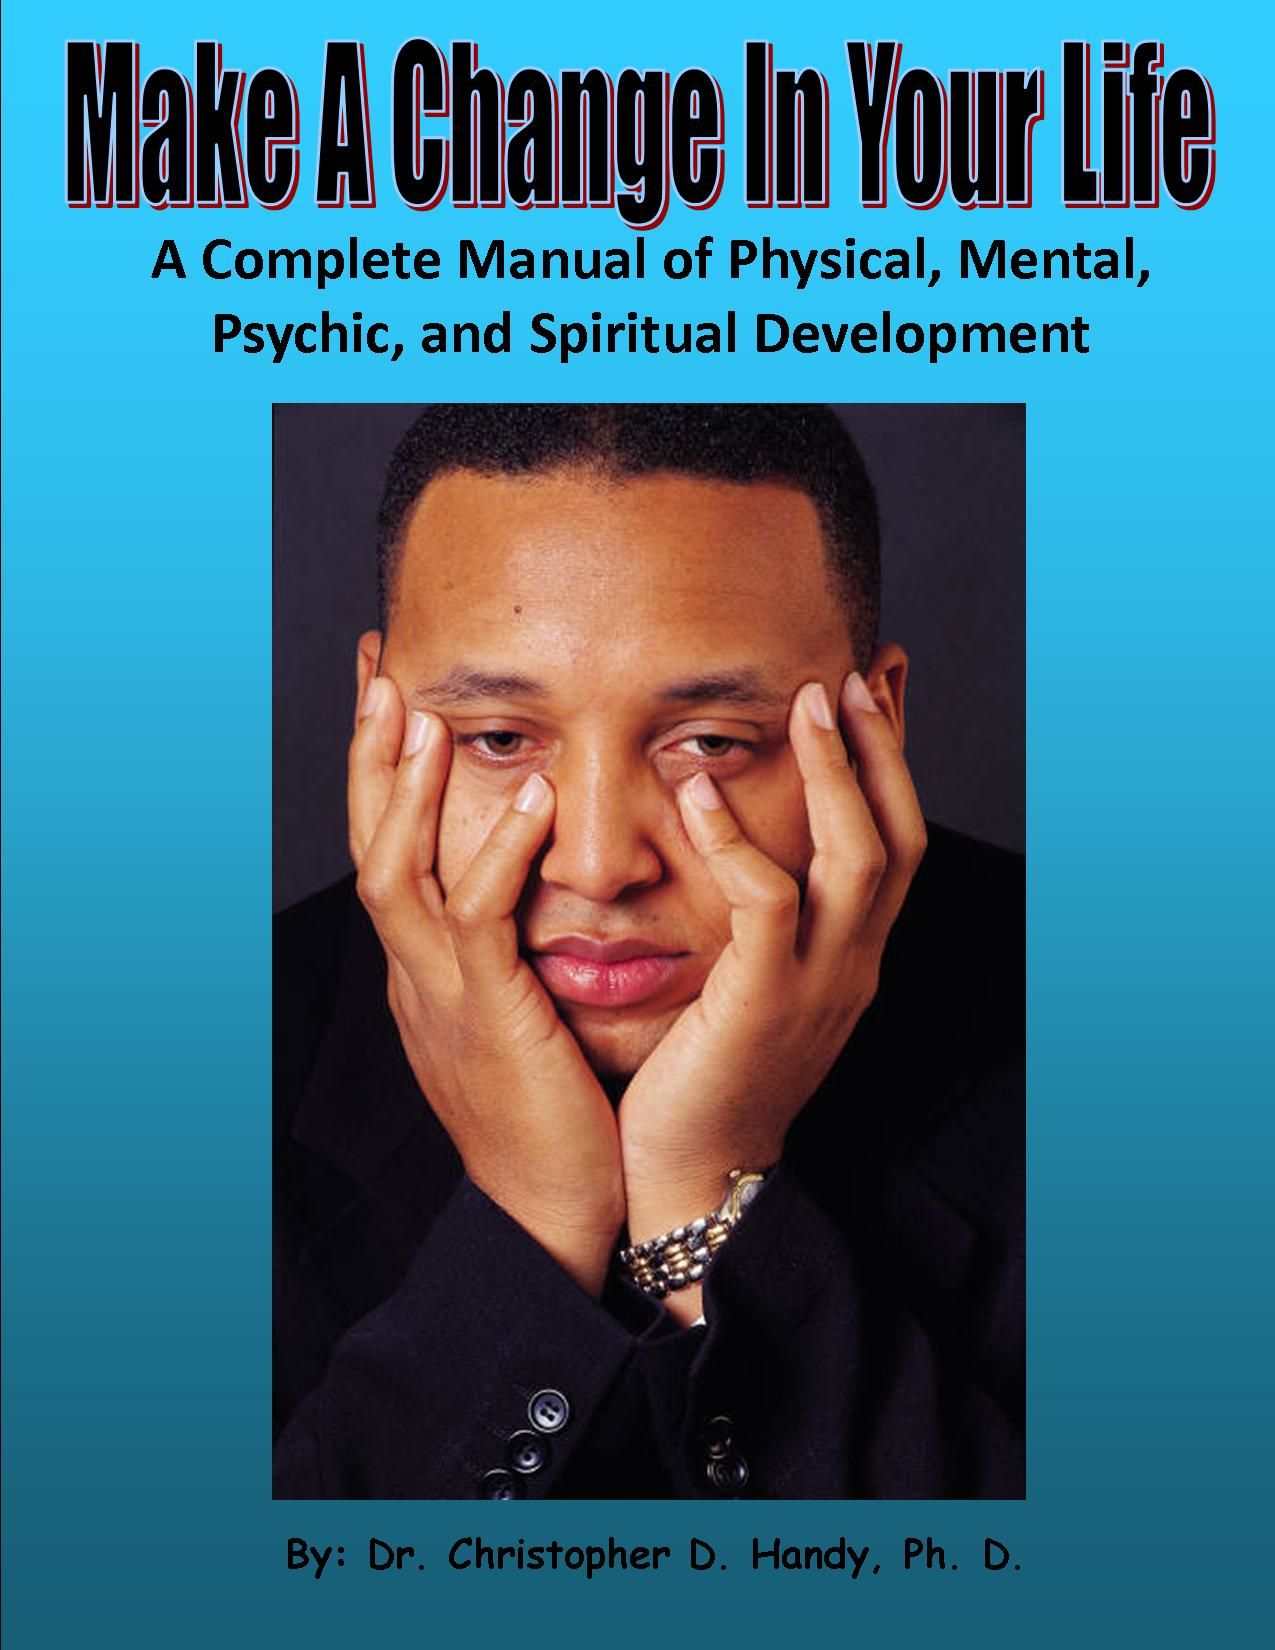 Make A Change In Your Life: A Complete Manual of Physical, Mental, Psychic, and Spiritual Development By: Christopher Handy